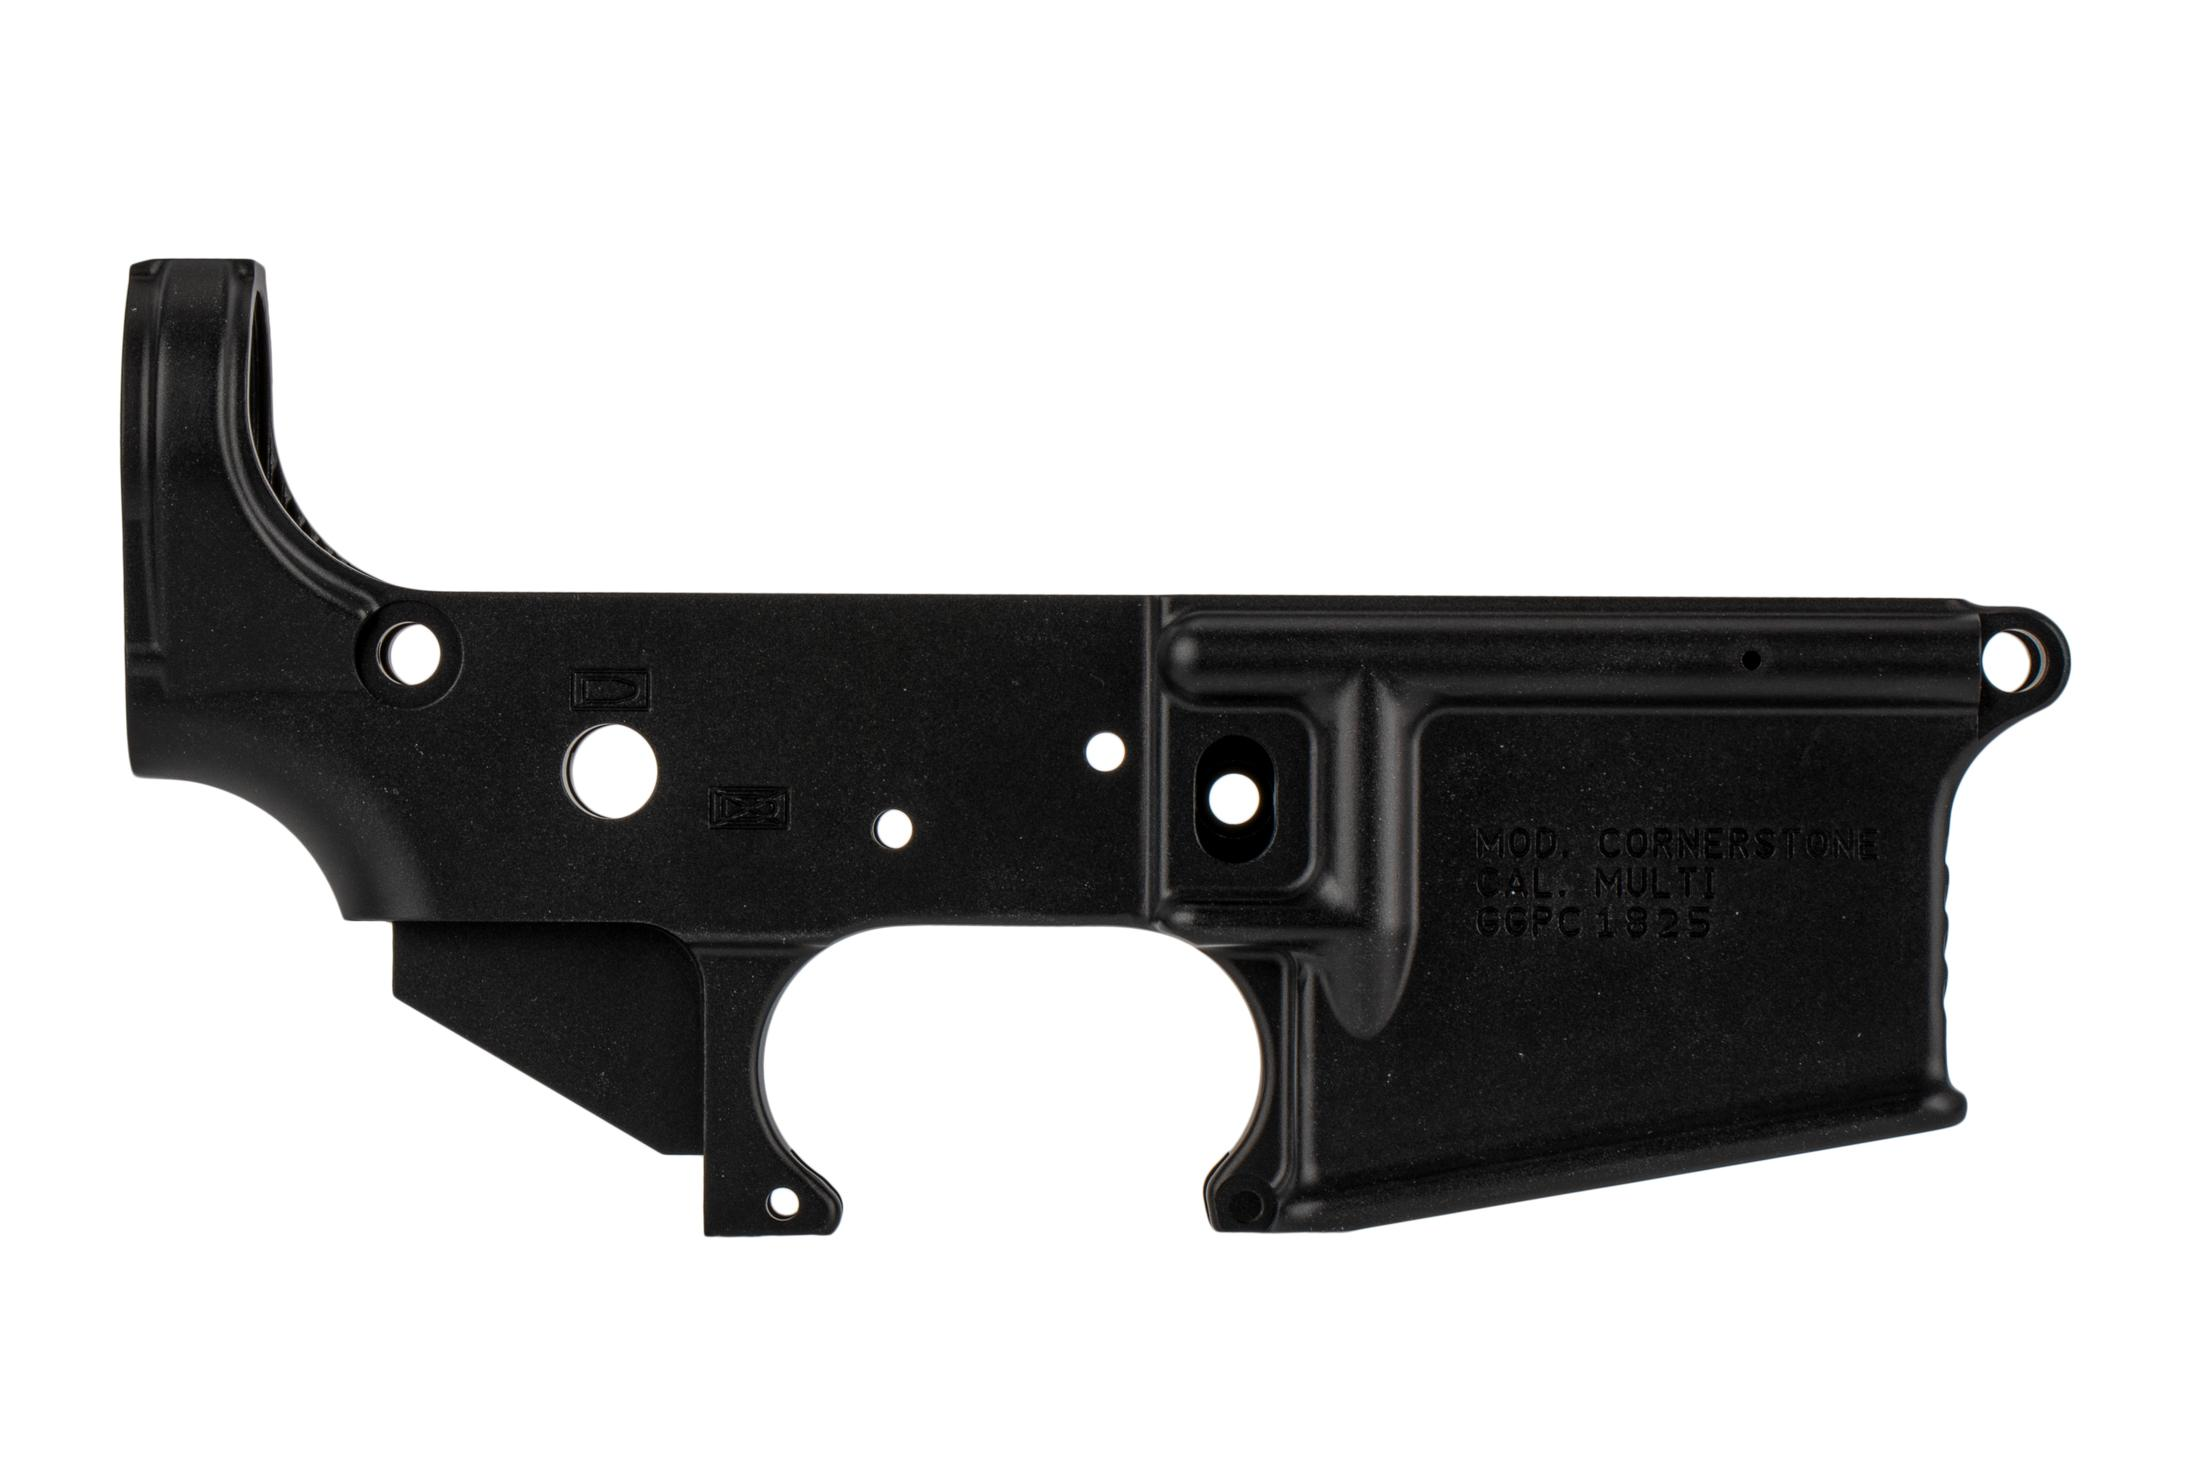 Grey Ghost Precision Cornerstone AR15 lower receiver features a tough hardcoat anodized finish